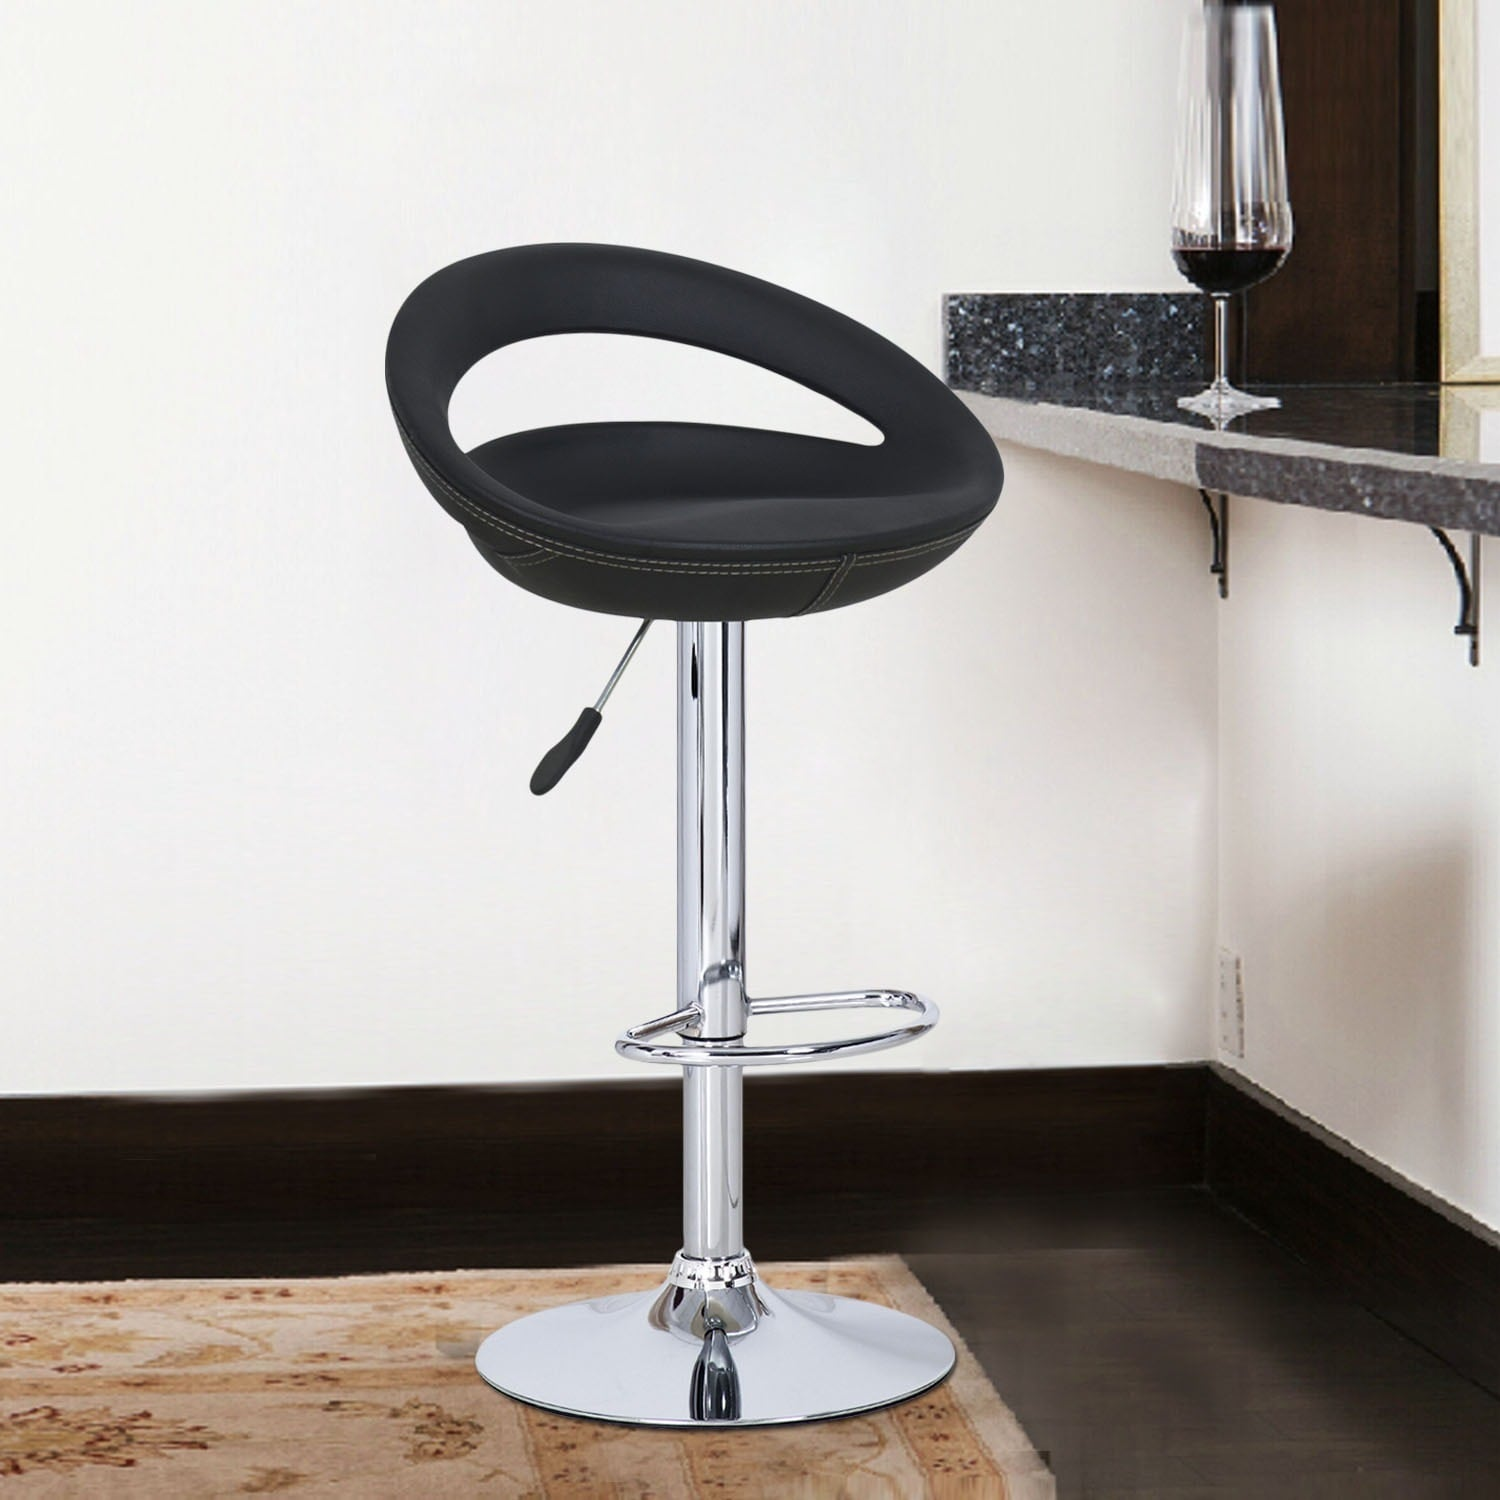 Adeco Black Round Hydraulic Lift Adjustable Barstool Chai...